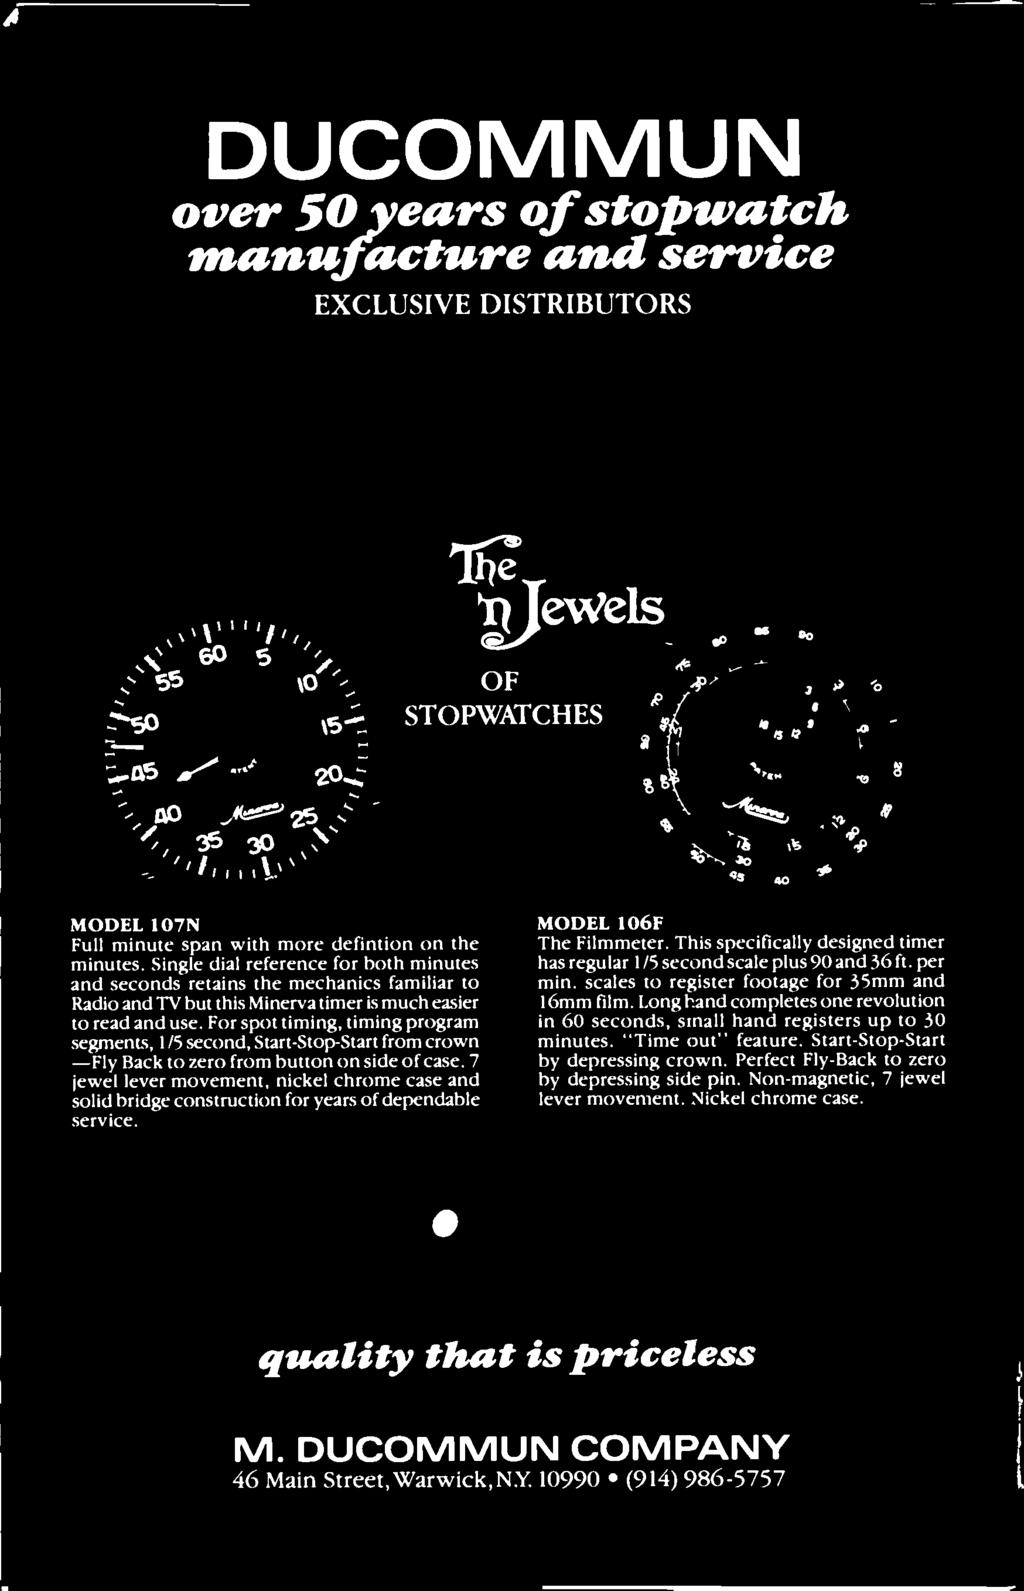 William morris agency inc pdf this specifically designed timer has regular i 5 second scale plus 90 and 36 ft fandeluxe Gallery